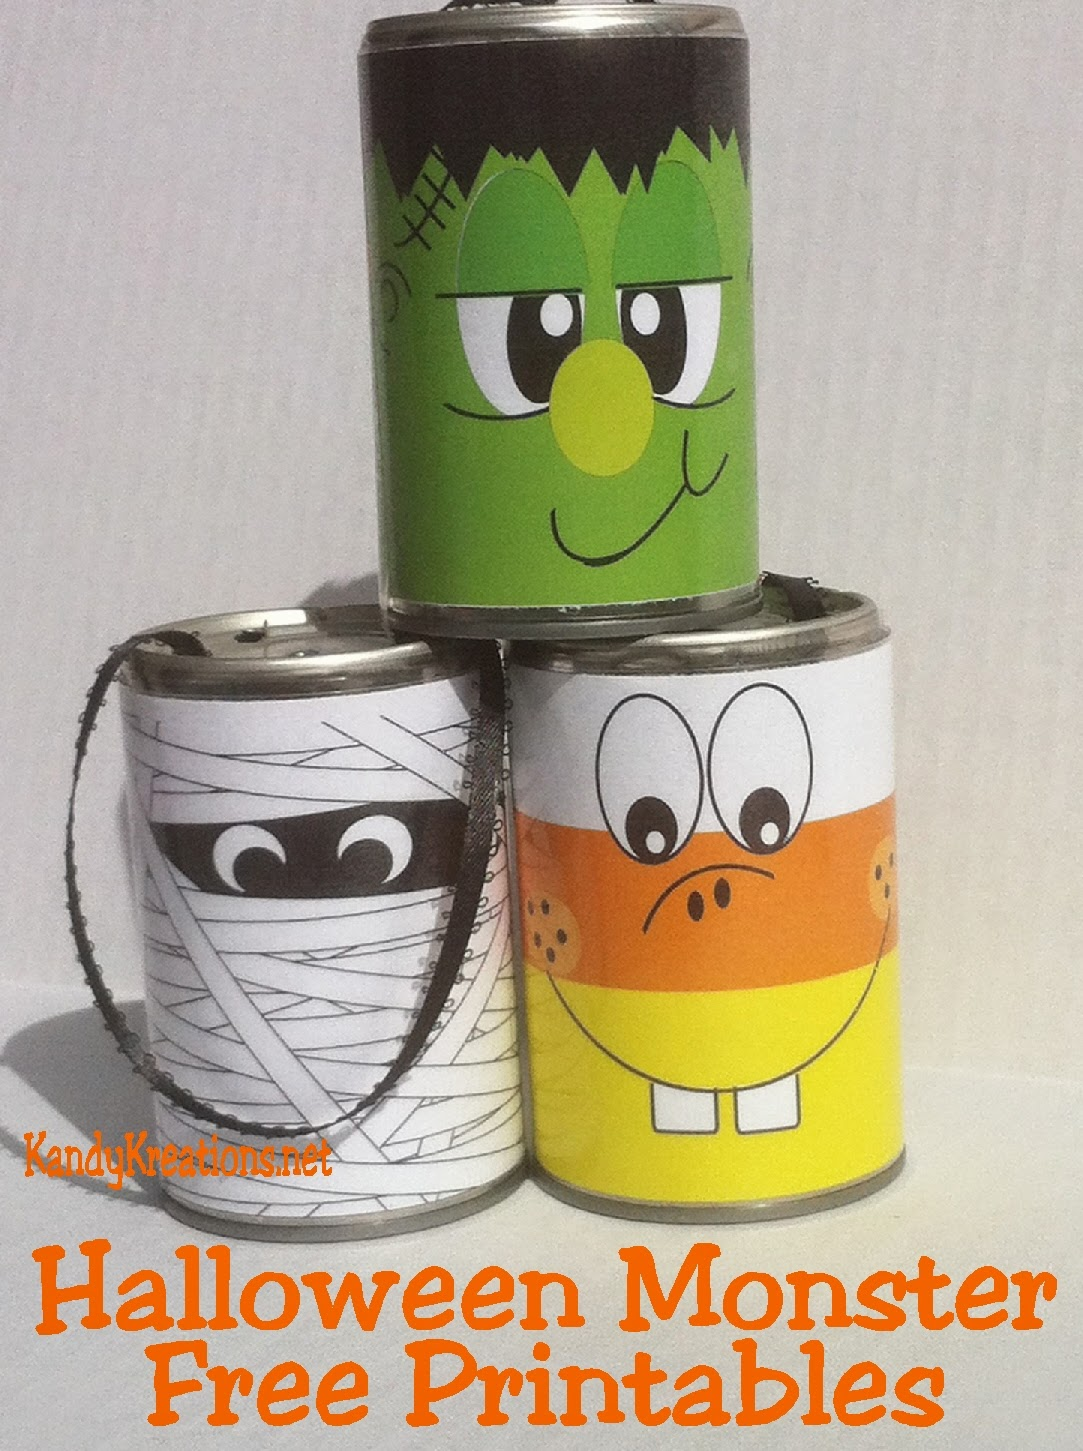 looking for easy halloween decorations how about these free printables halloween monsters using tin cans